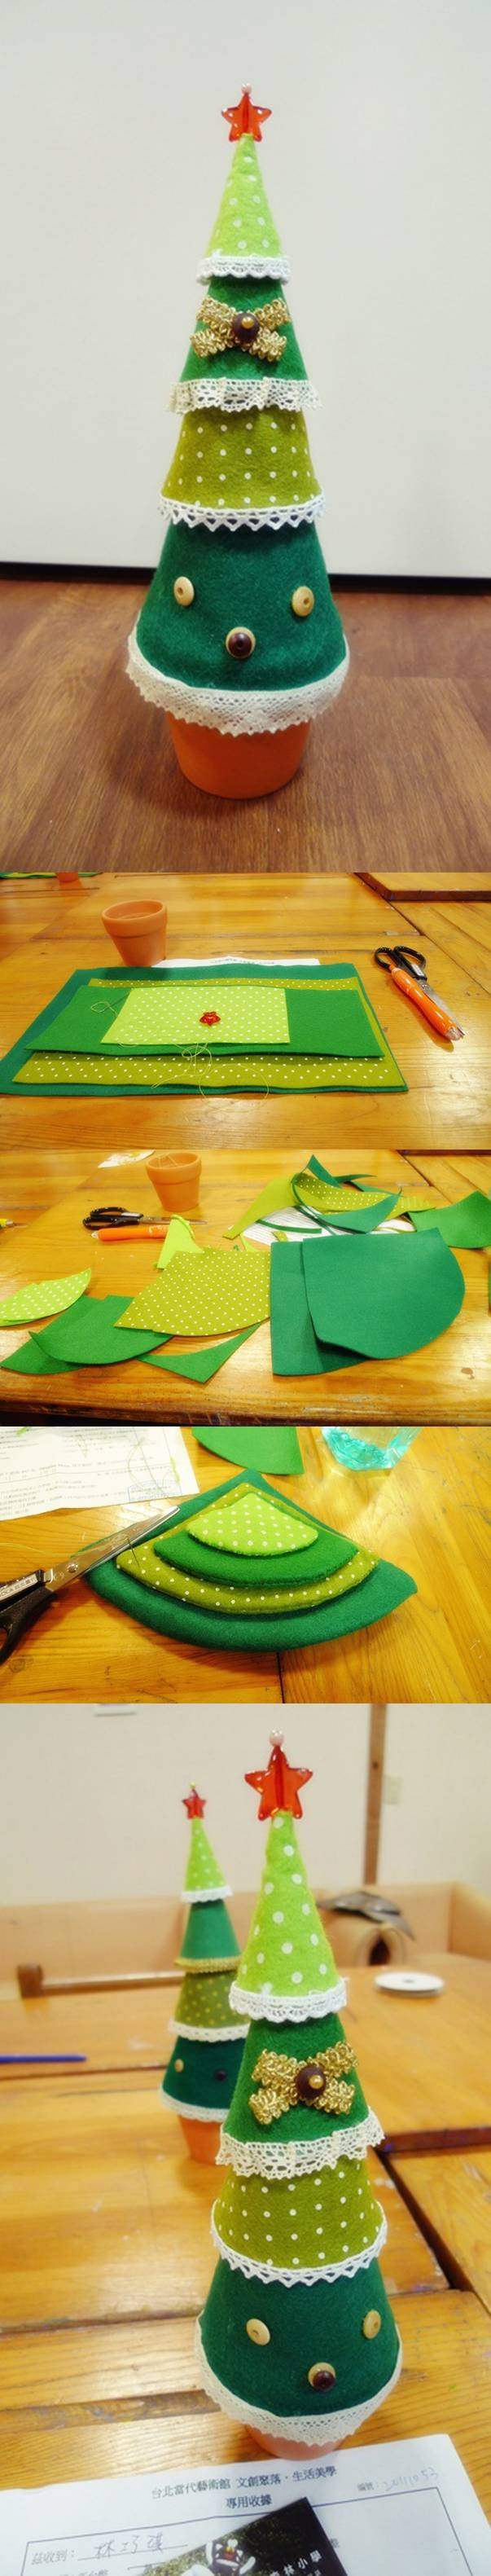 diy-easy-felt-christmas-tree